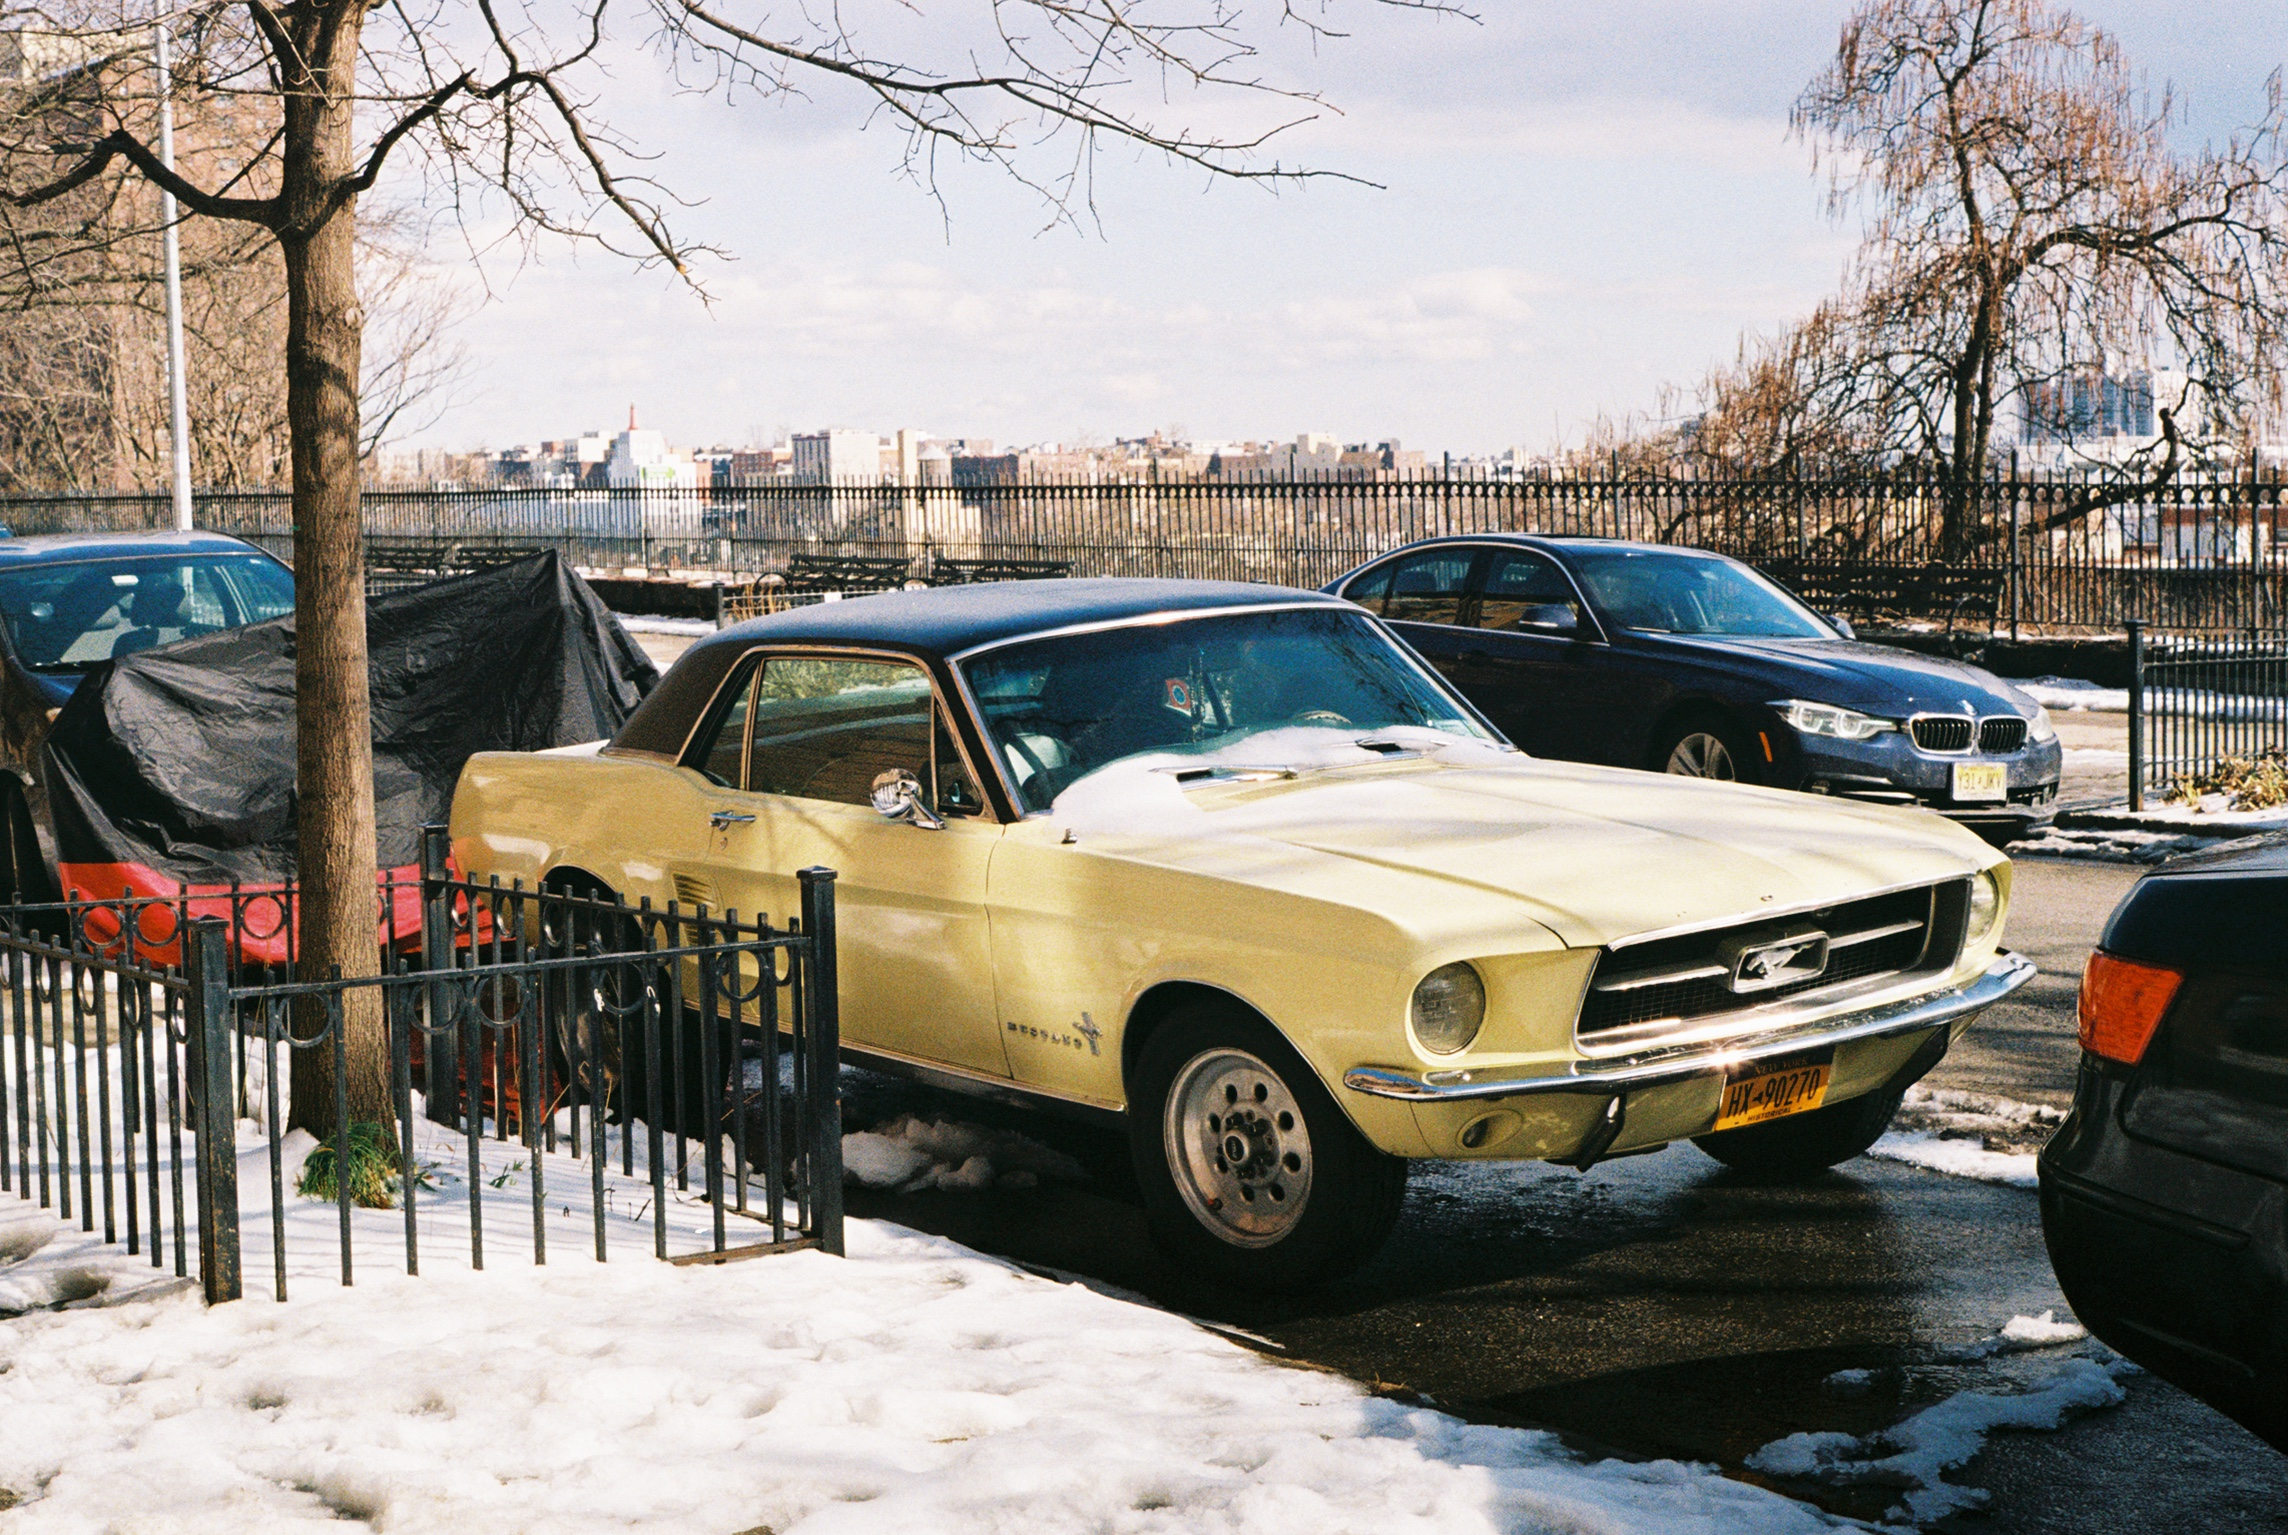 Sugar Hill, with The Bronx off in the distance.  Kodak Ultra Max 400. Pentax K1000. Fletcher Berryman 2019.